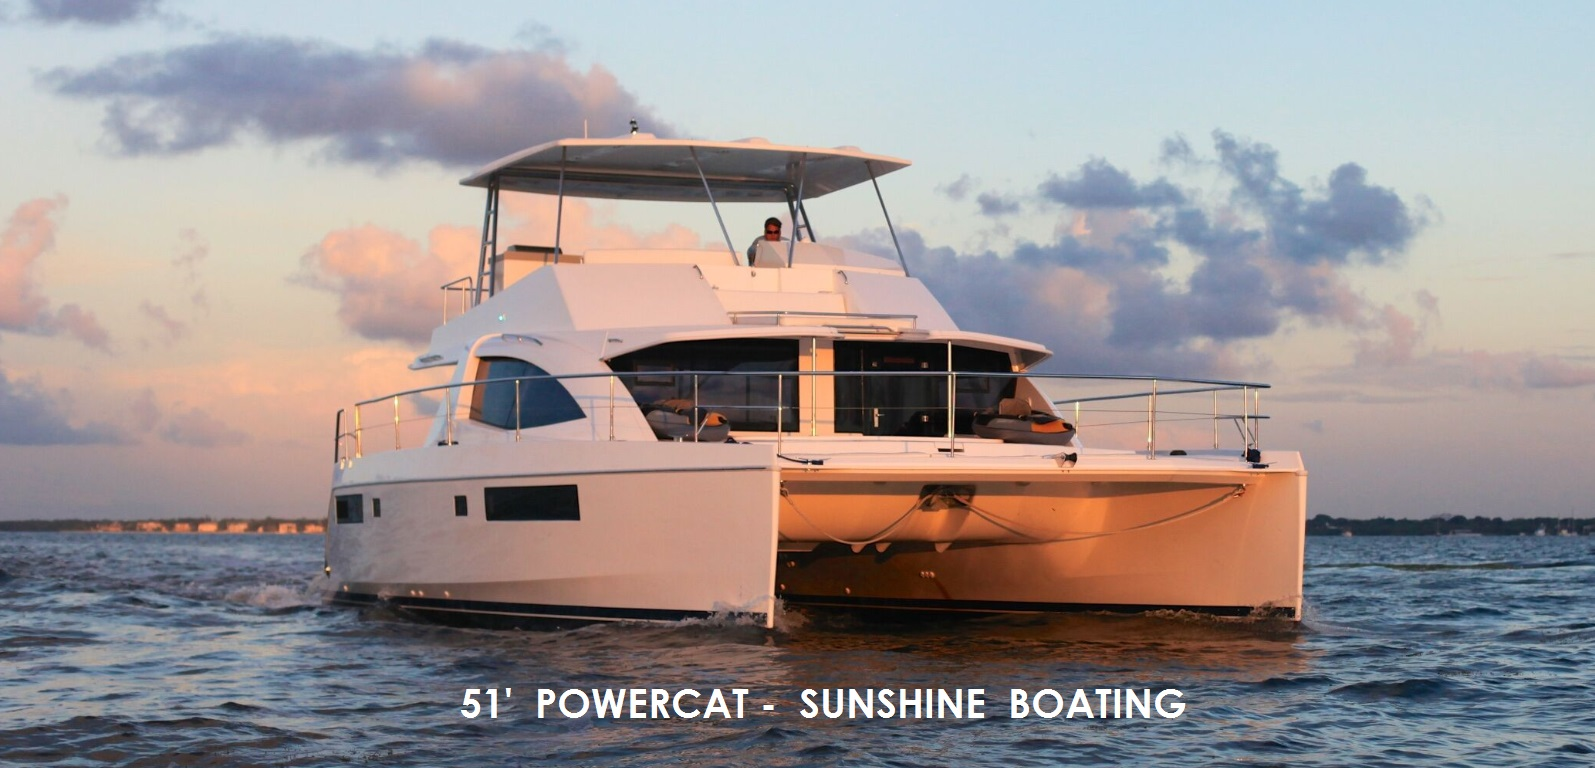 sunshine-boating-powercat-51-b